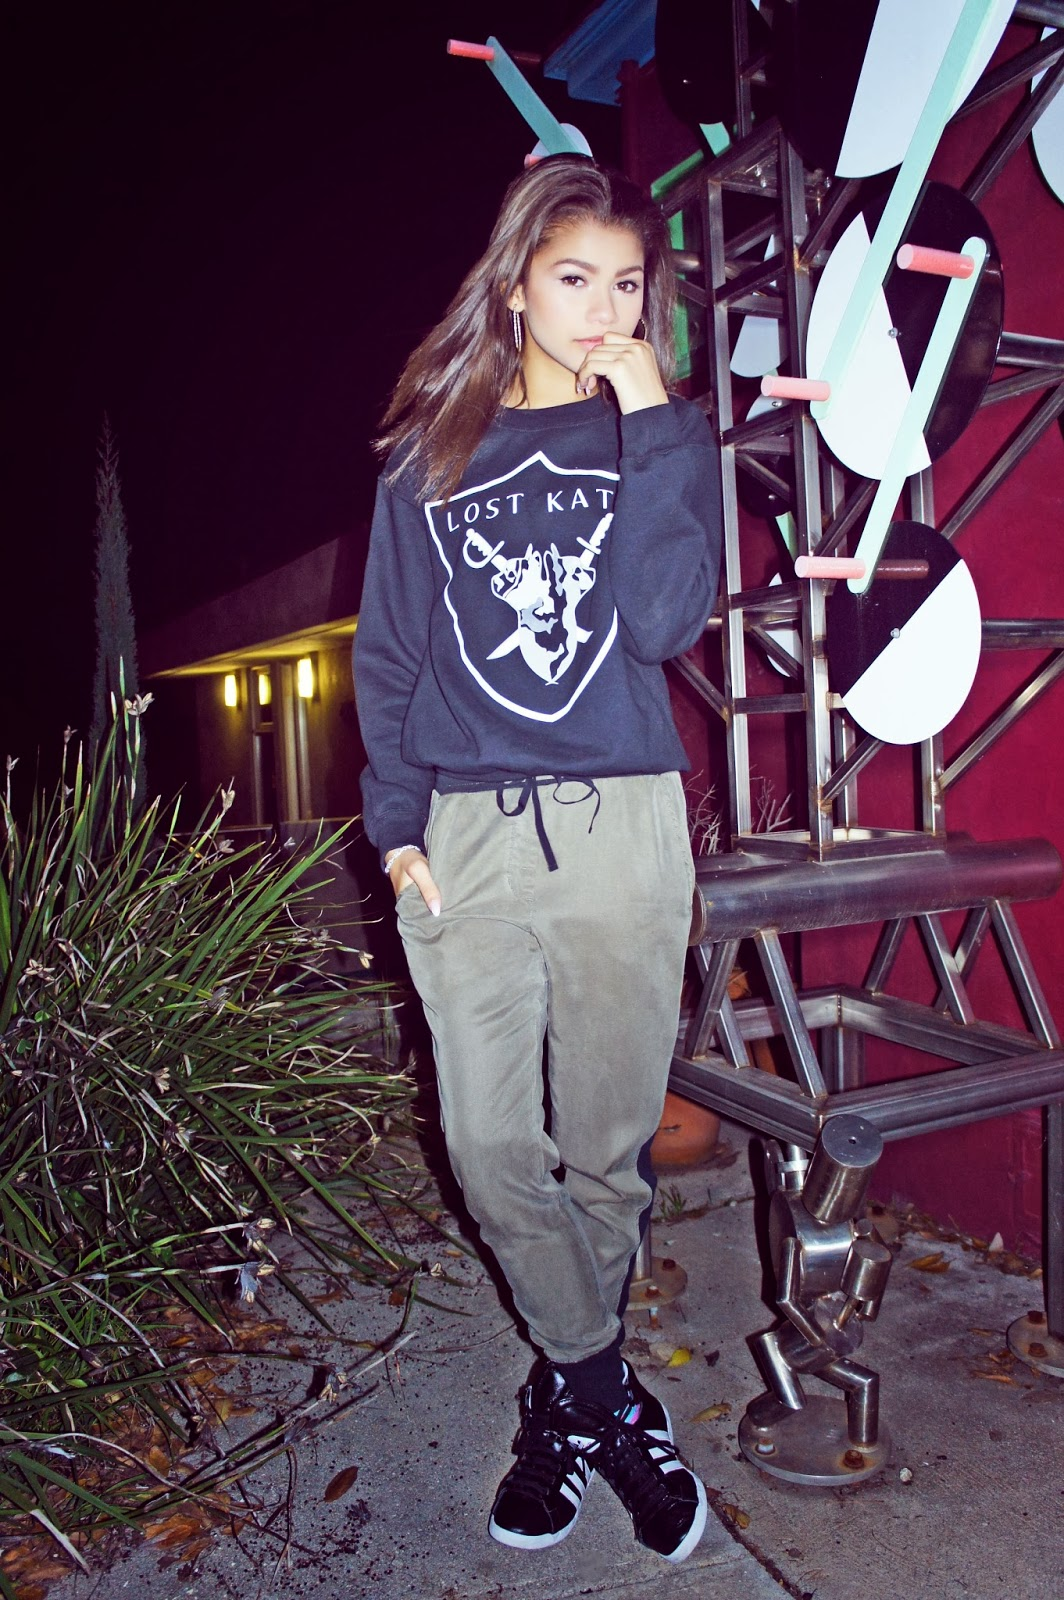 Oakland Raiders Girl Wallpaper Fashion Trends For Tomboys And Girlie Tomboys My Friday